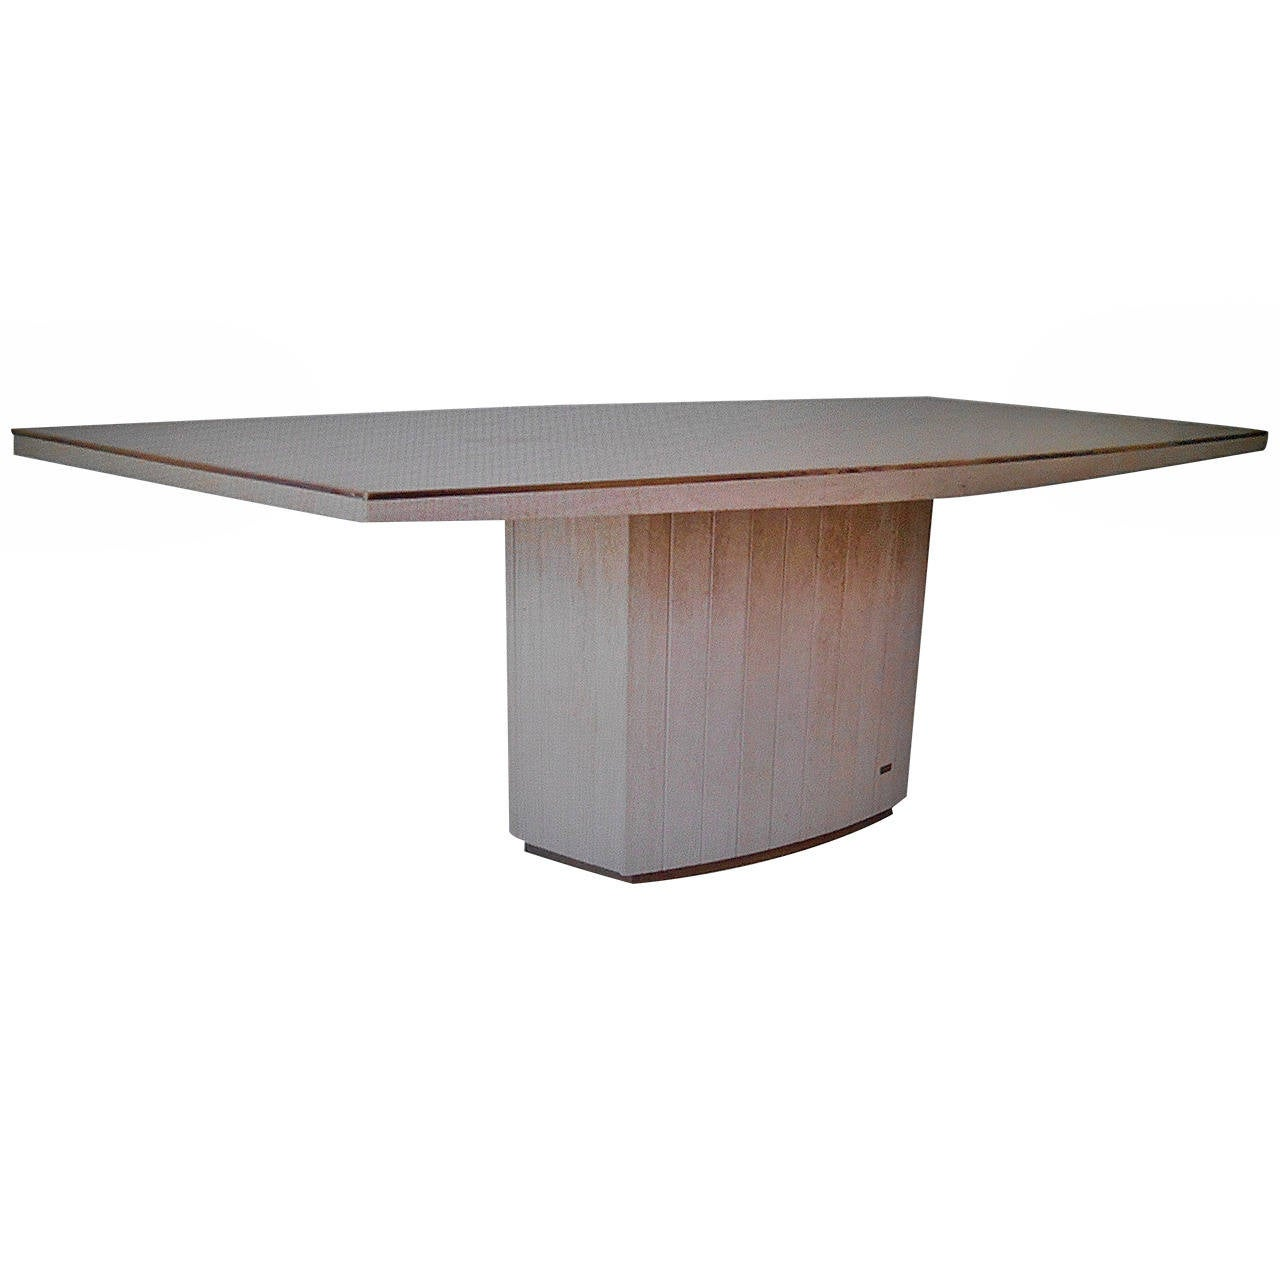 Willy rizzo and j charles travertine table at 1stdibs for Table willy rizzo